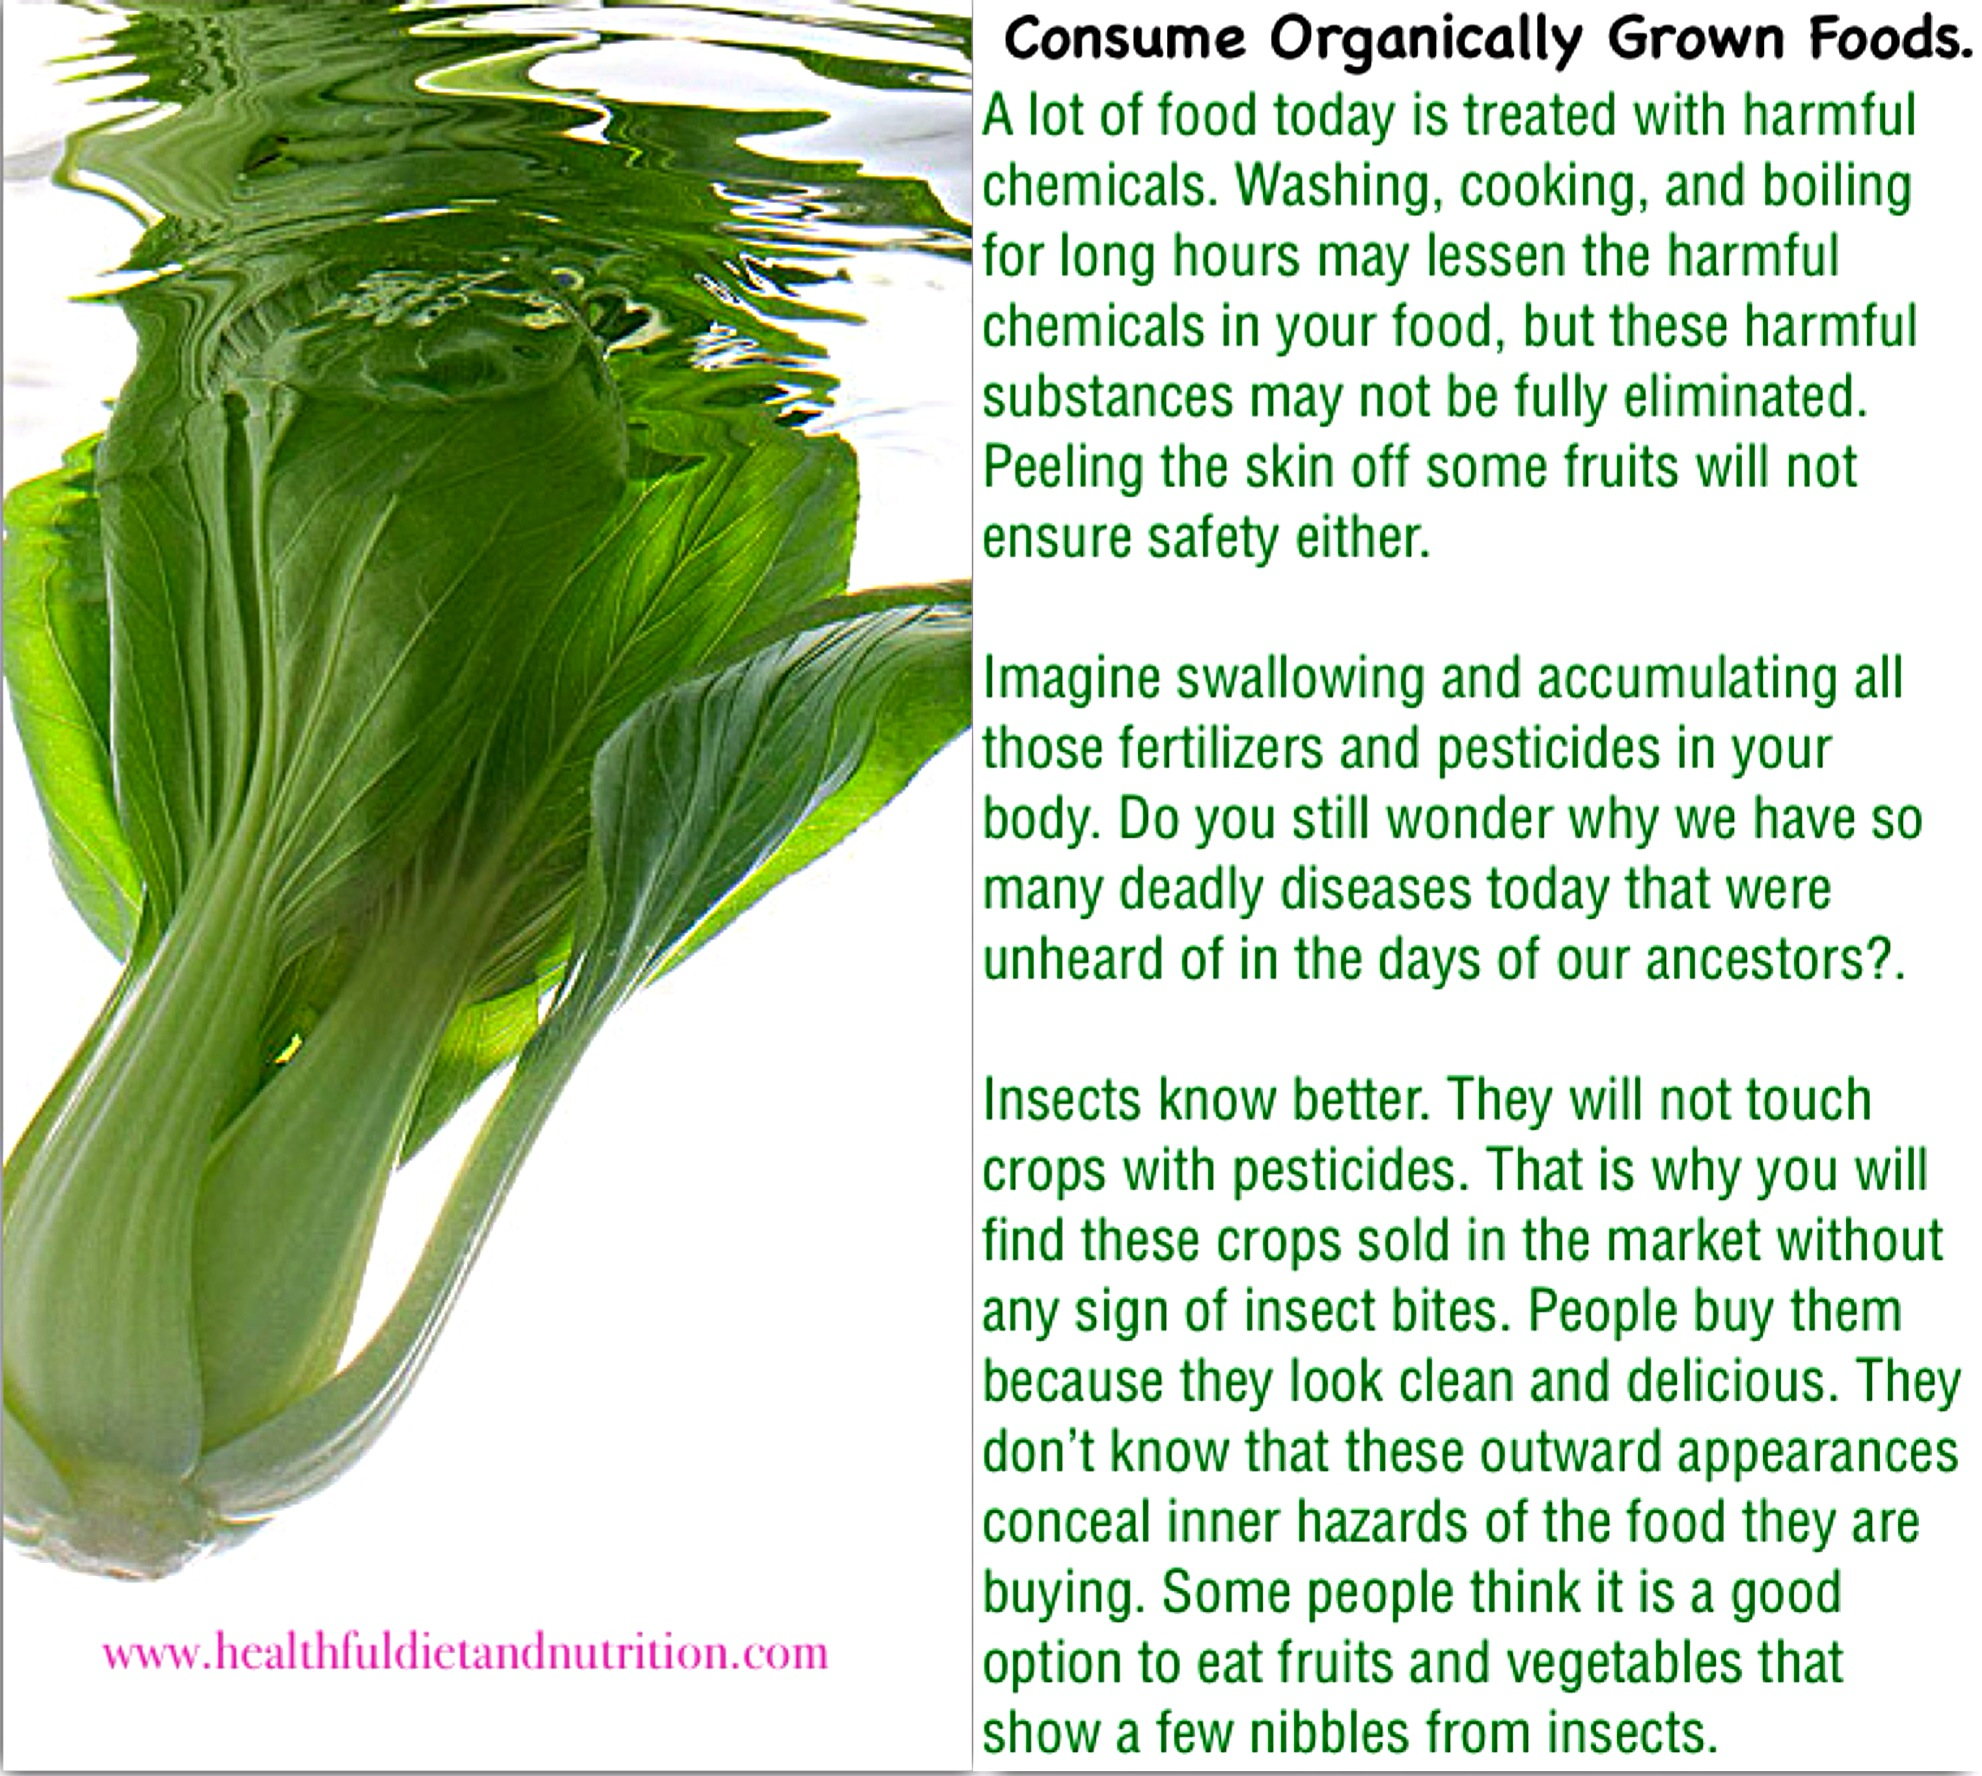 Consume Organically Grown Foods